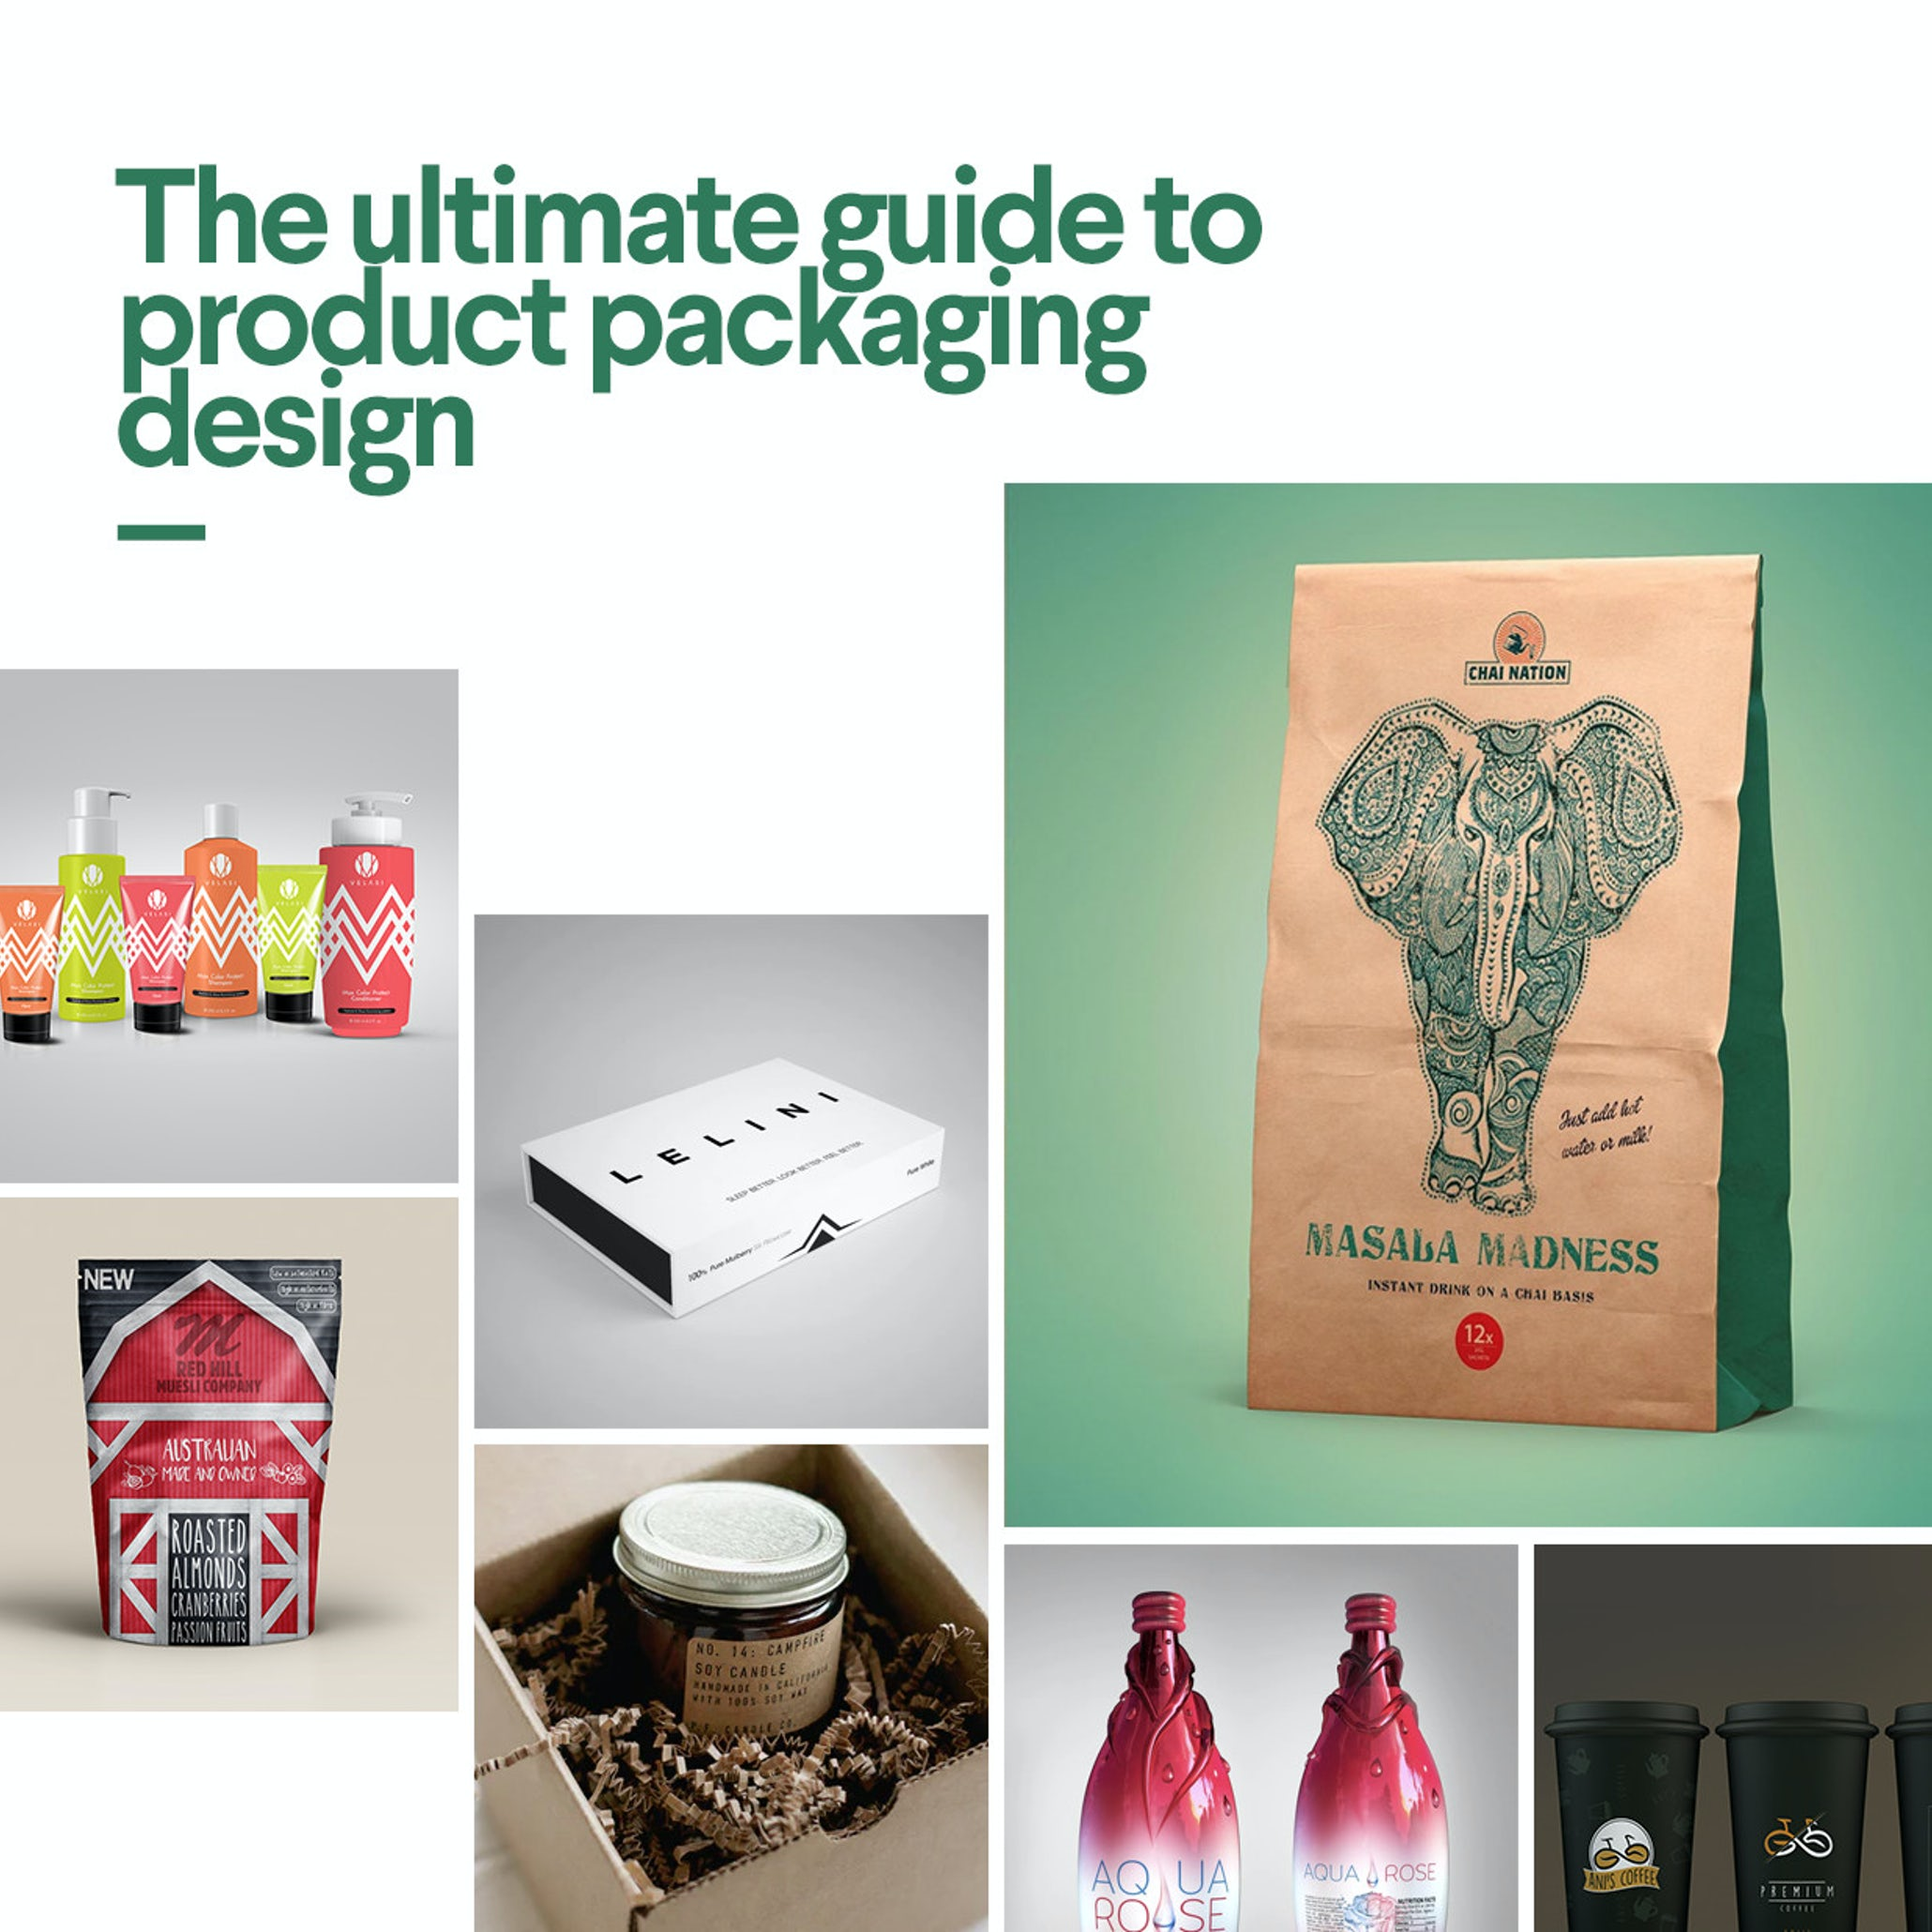 The ultimate guide to product packaging design - 99designs